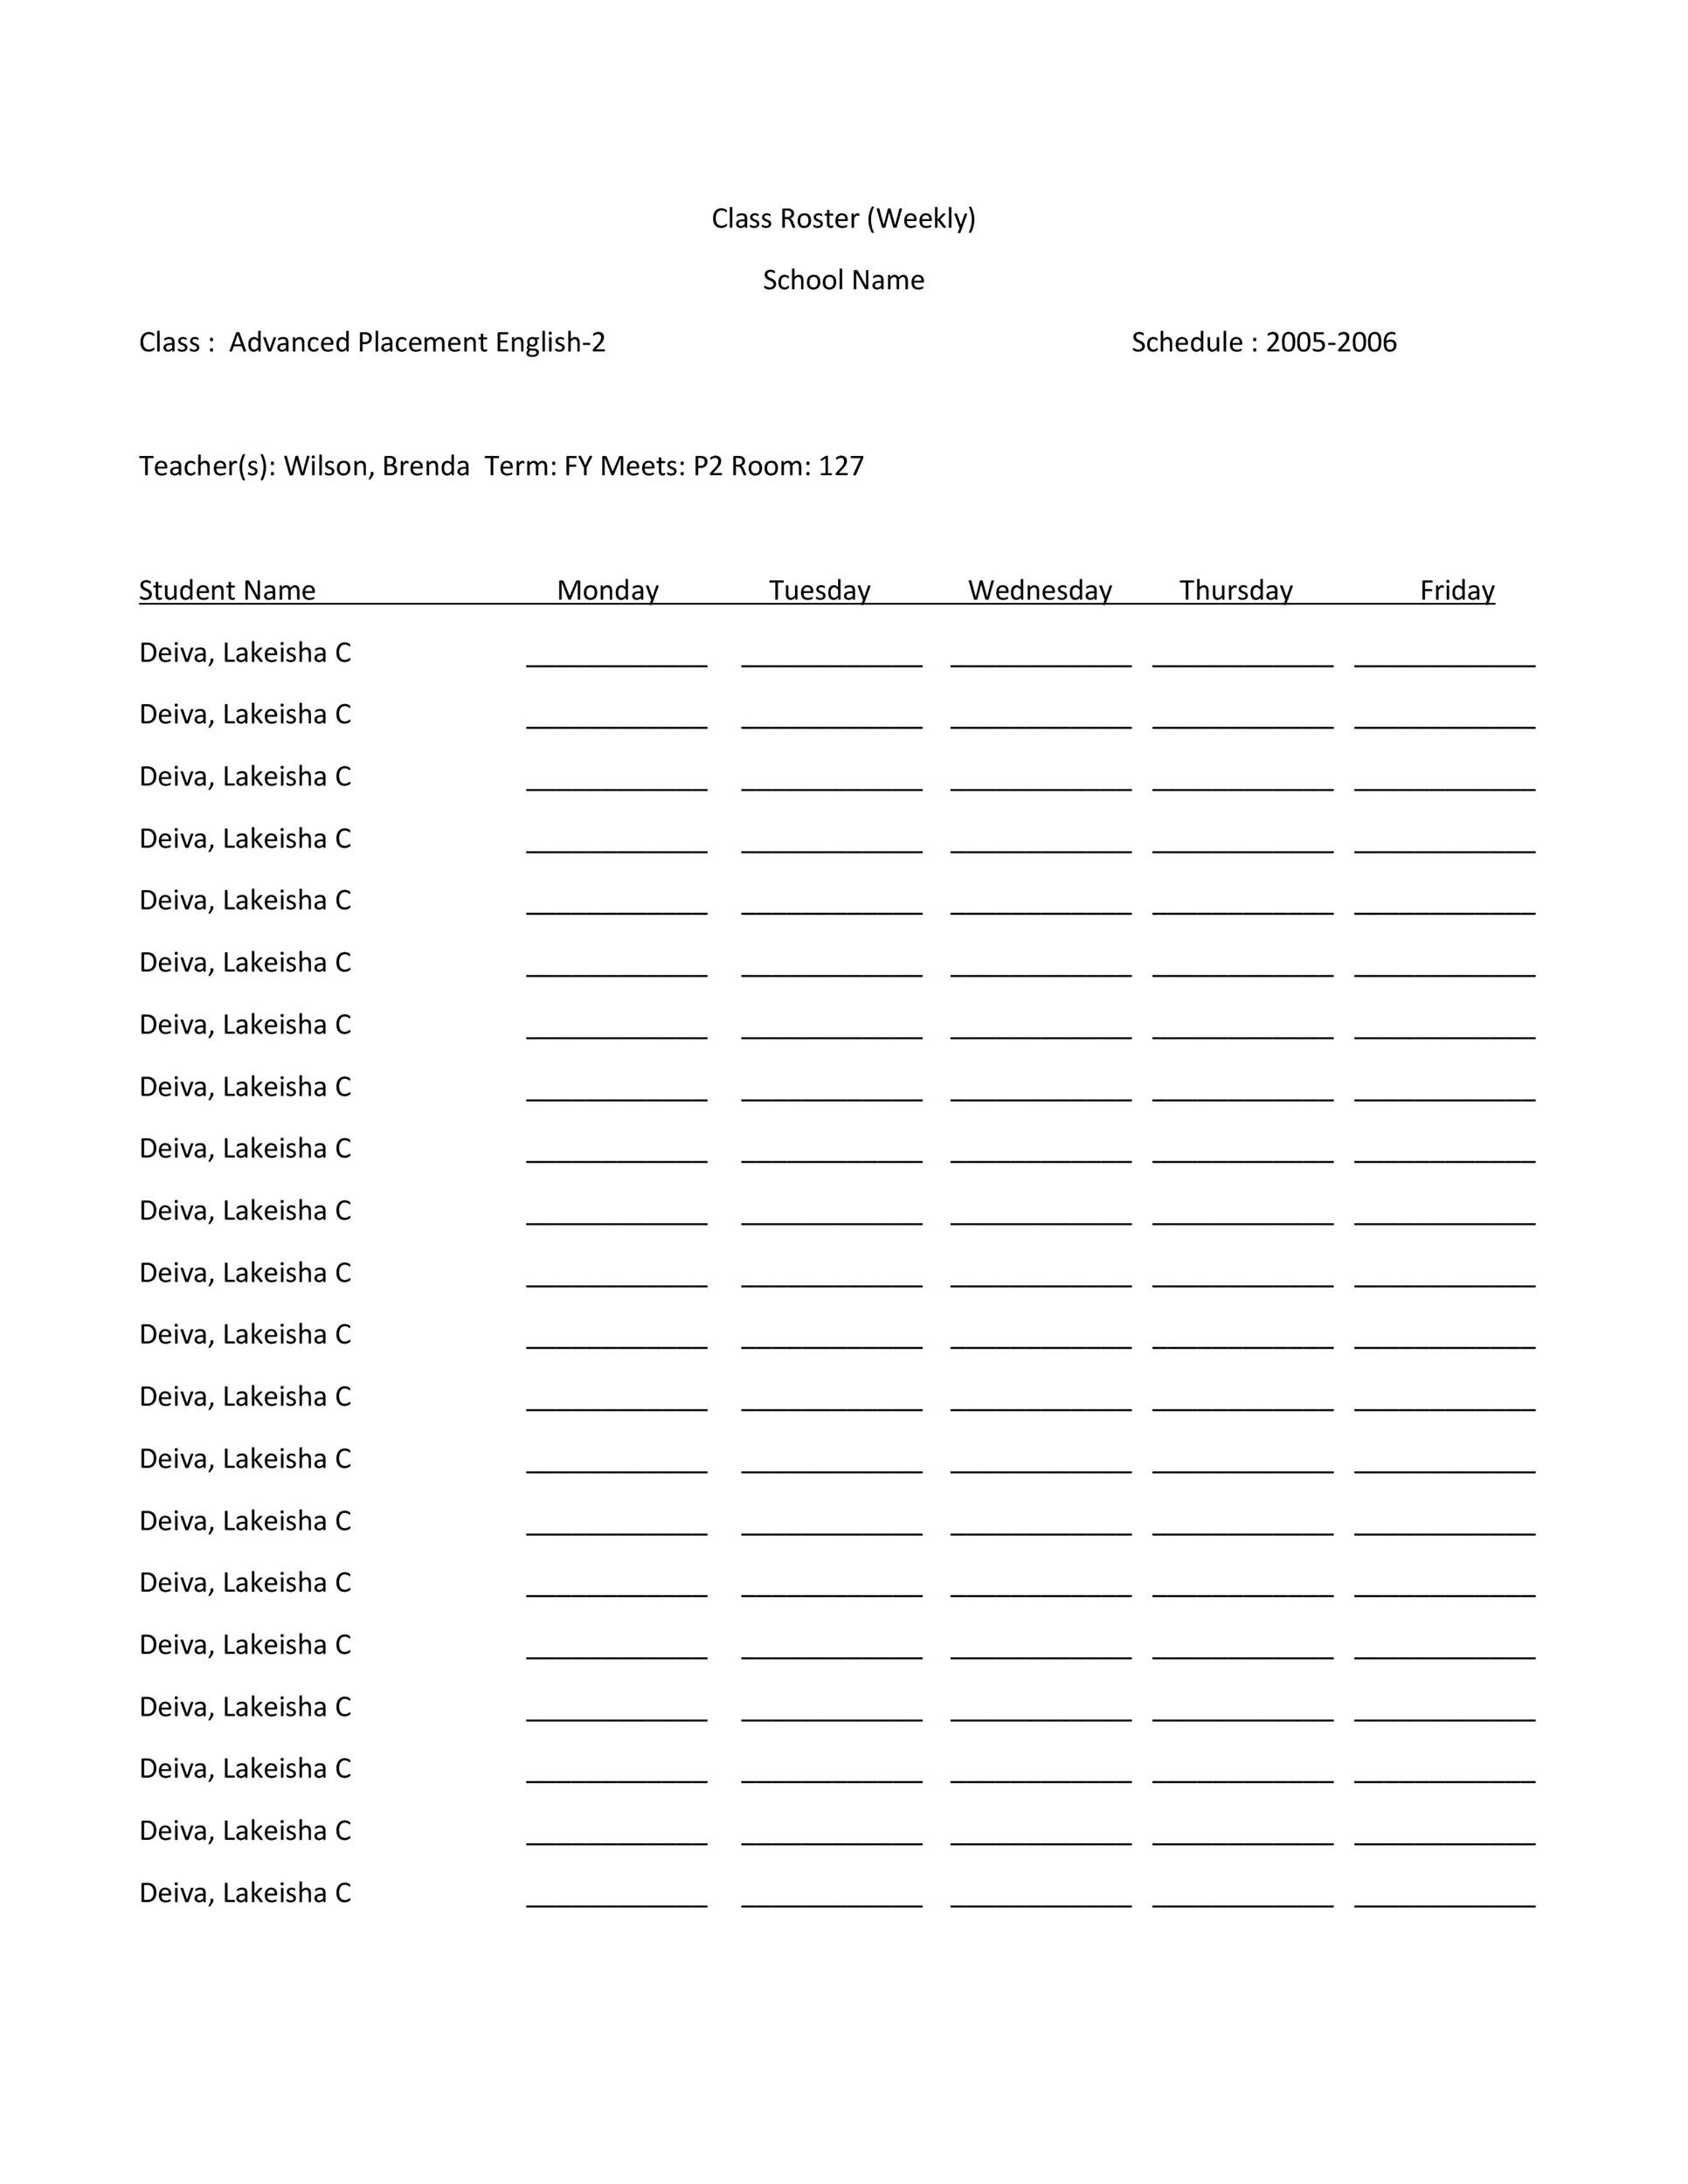 Free class roster template 37